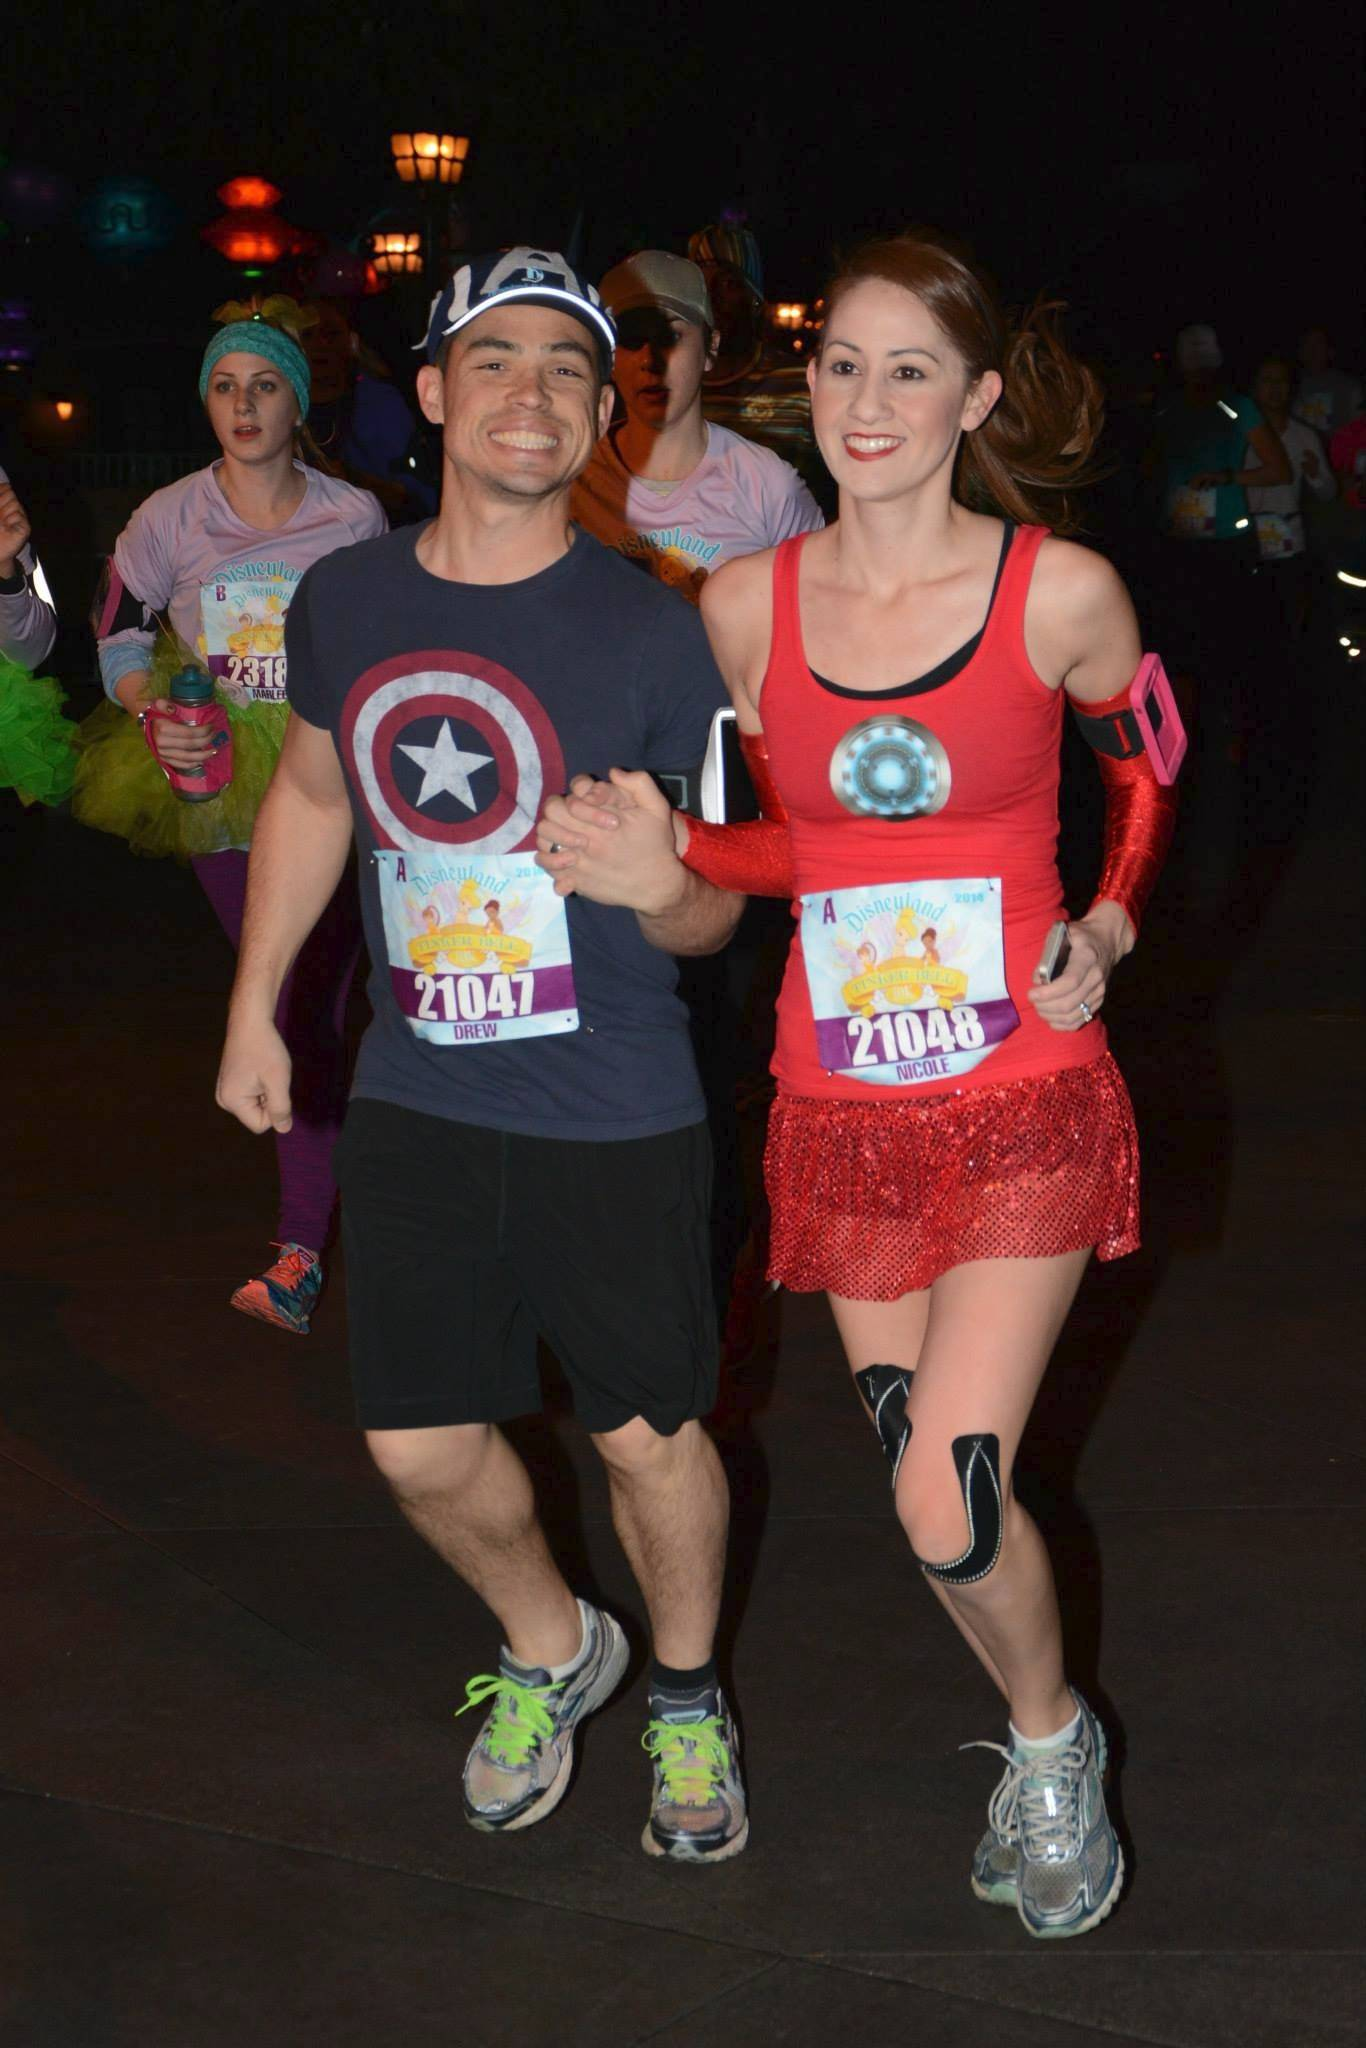 This couple running in superhero gear during the Disneyland Tinkerbell 10K in January might want to reuse their outfits for the new Disneyland Avengers Super Heroes Half Marathon.